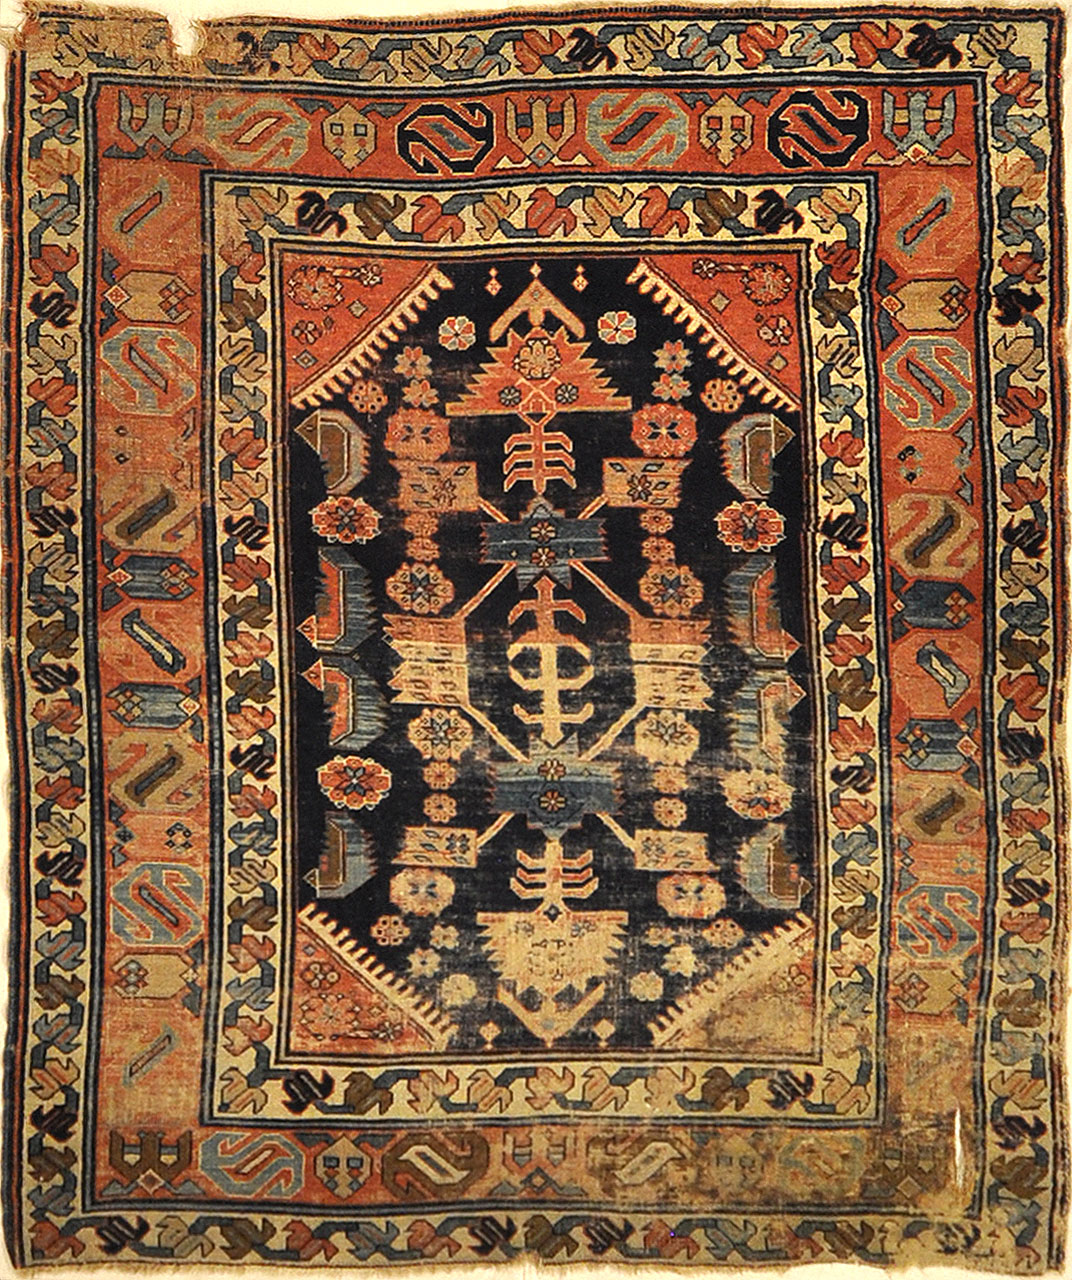 Antique Proto Kurdish Rug Early 19th Century. A piece of genuine authentic woven carpet art sold by Santa Barbara Design Center Rugs and More.